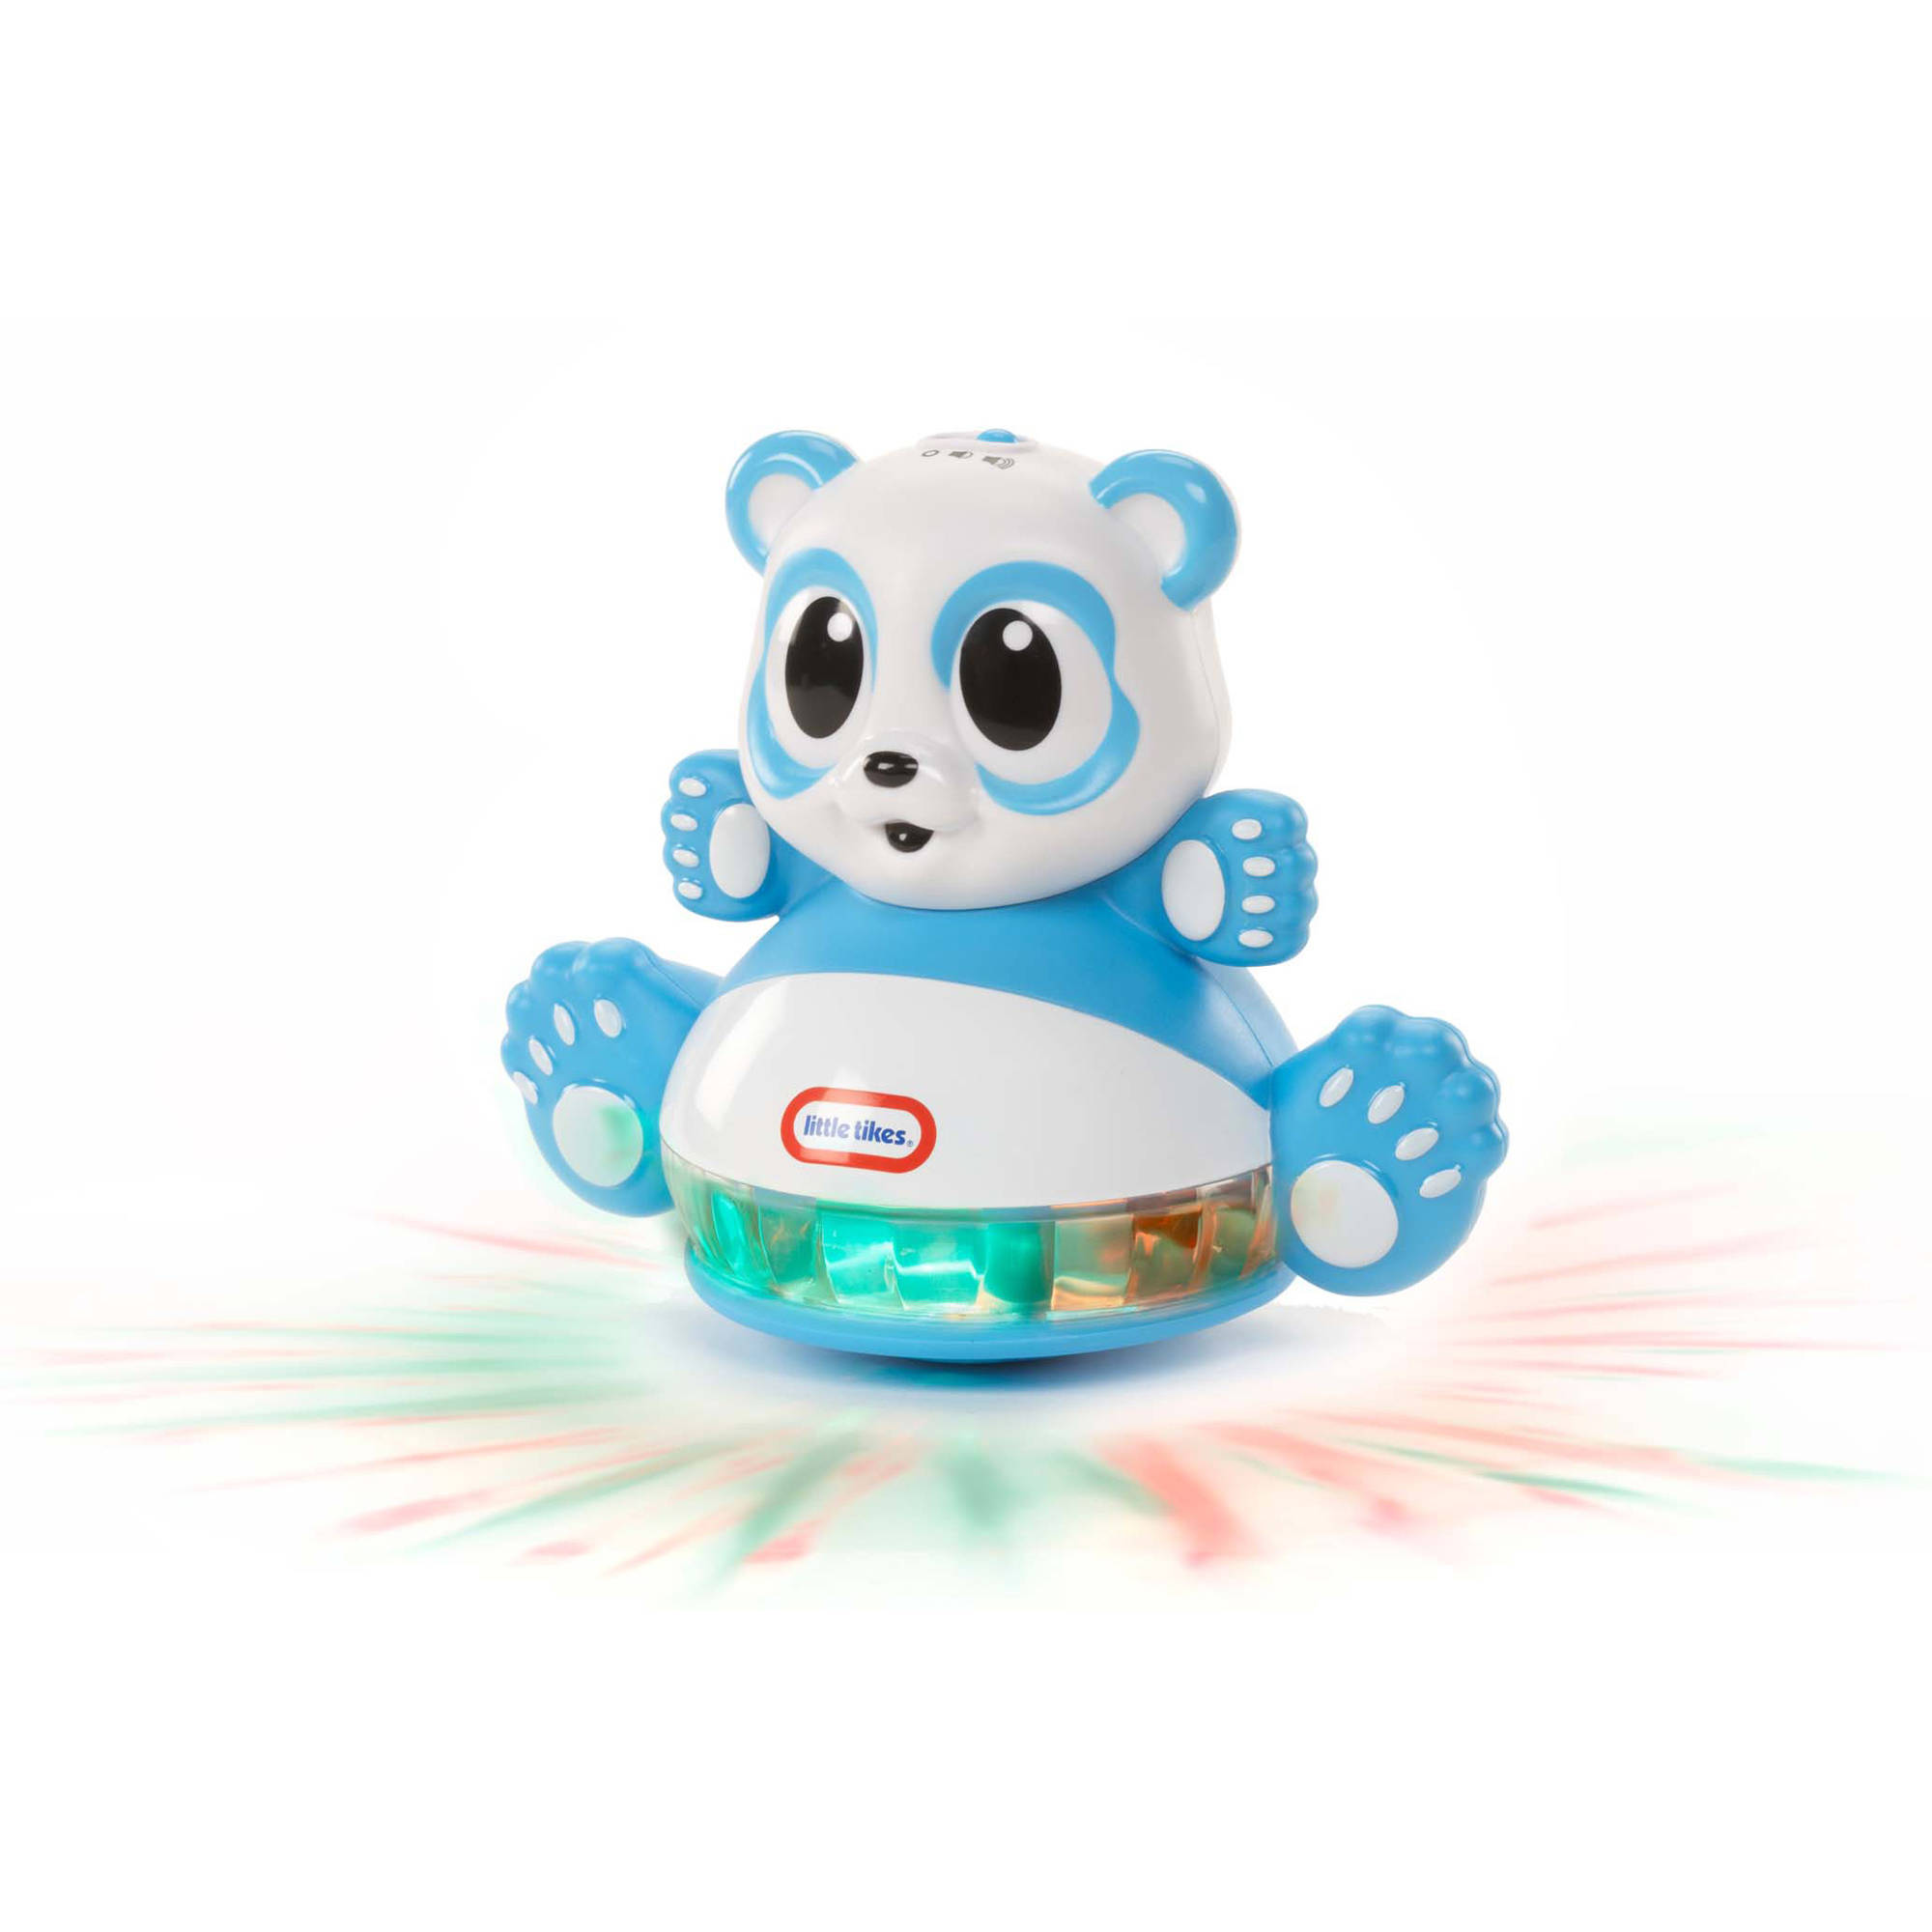 Little Tikes Light 'n Go Wobblin' Lights Panda by Little Tikes